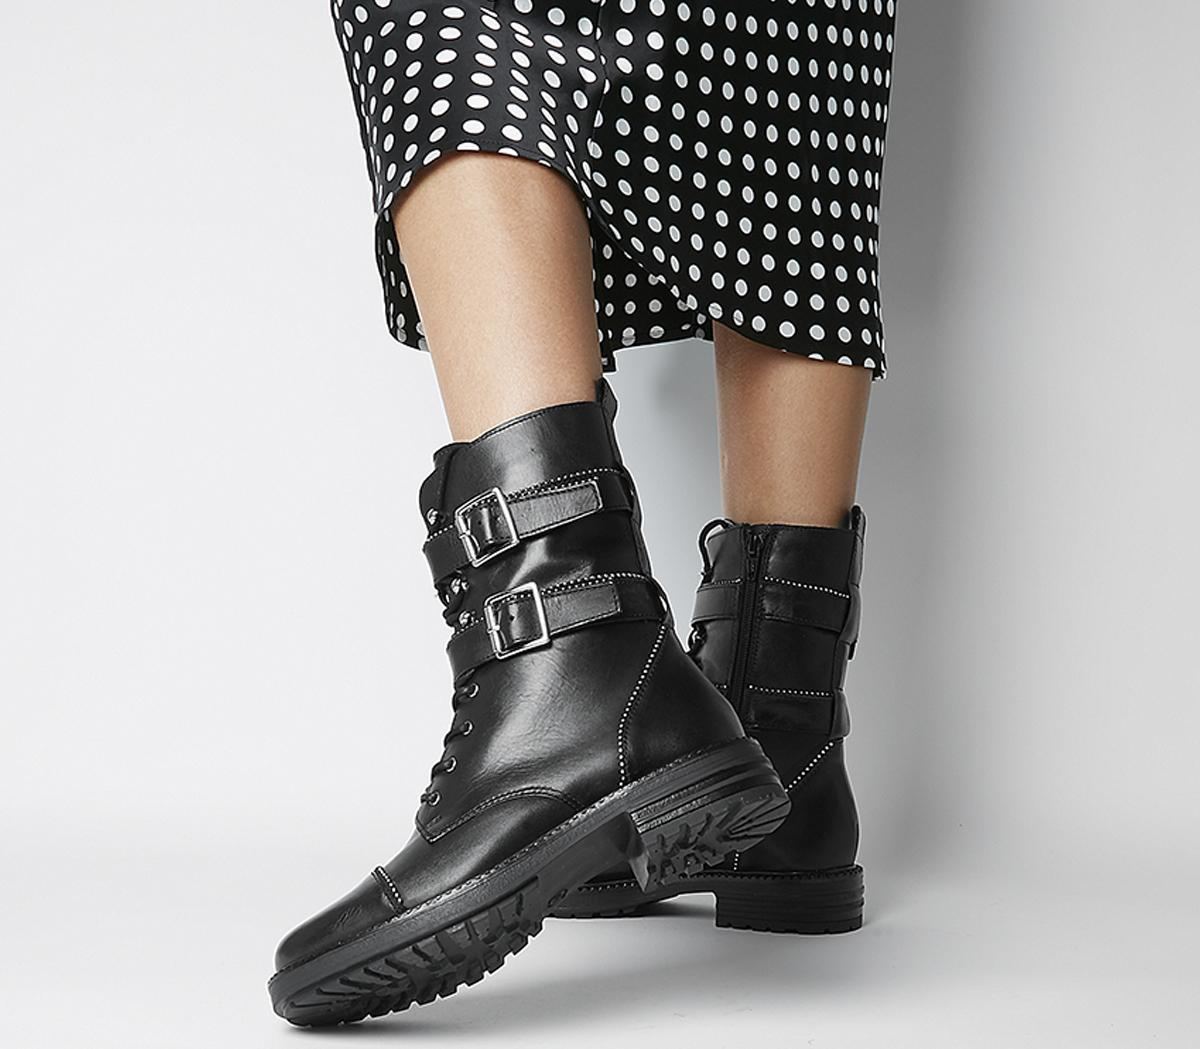 Another One High Cut Lace Up Boots